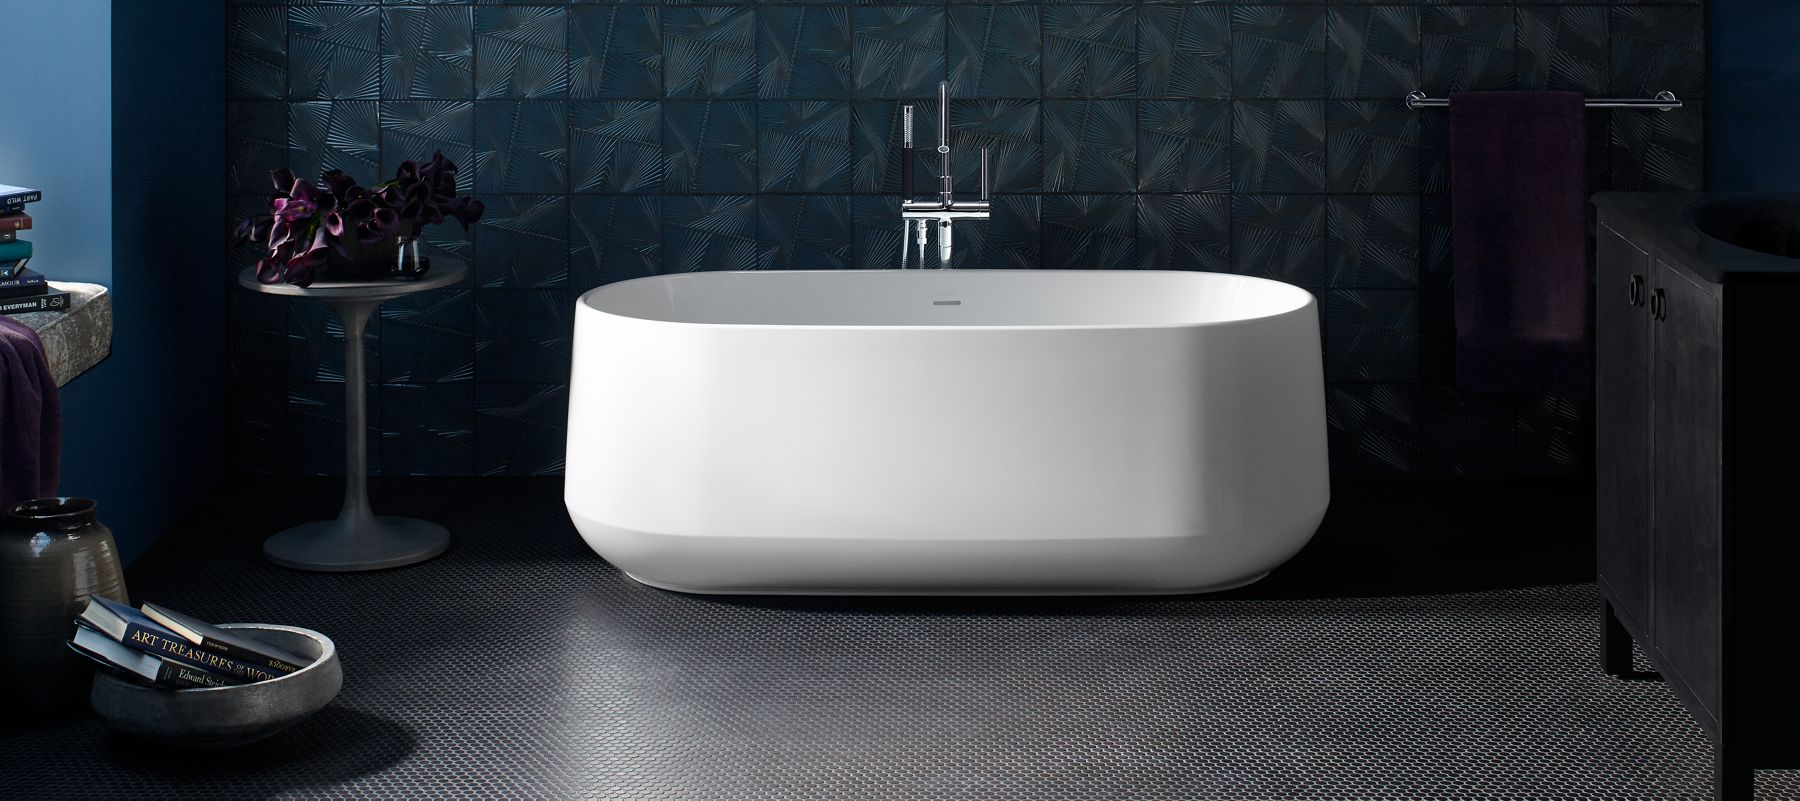 Bathroom Accessories Kohler fine bathroom accessories kohler t intended inspiration